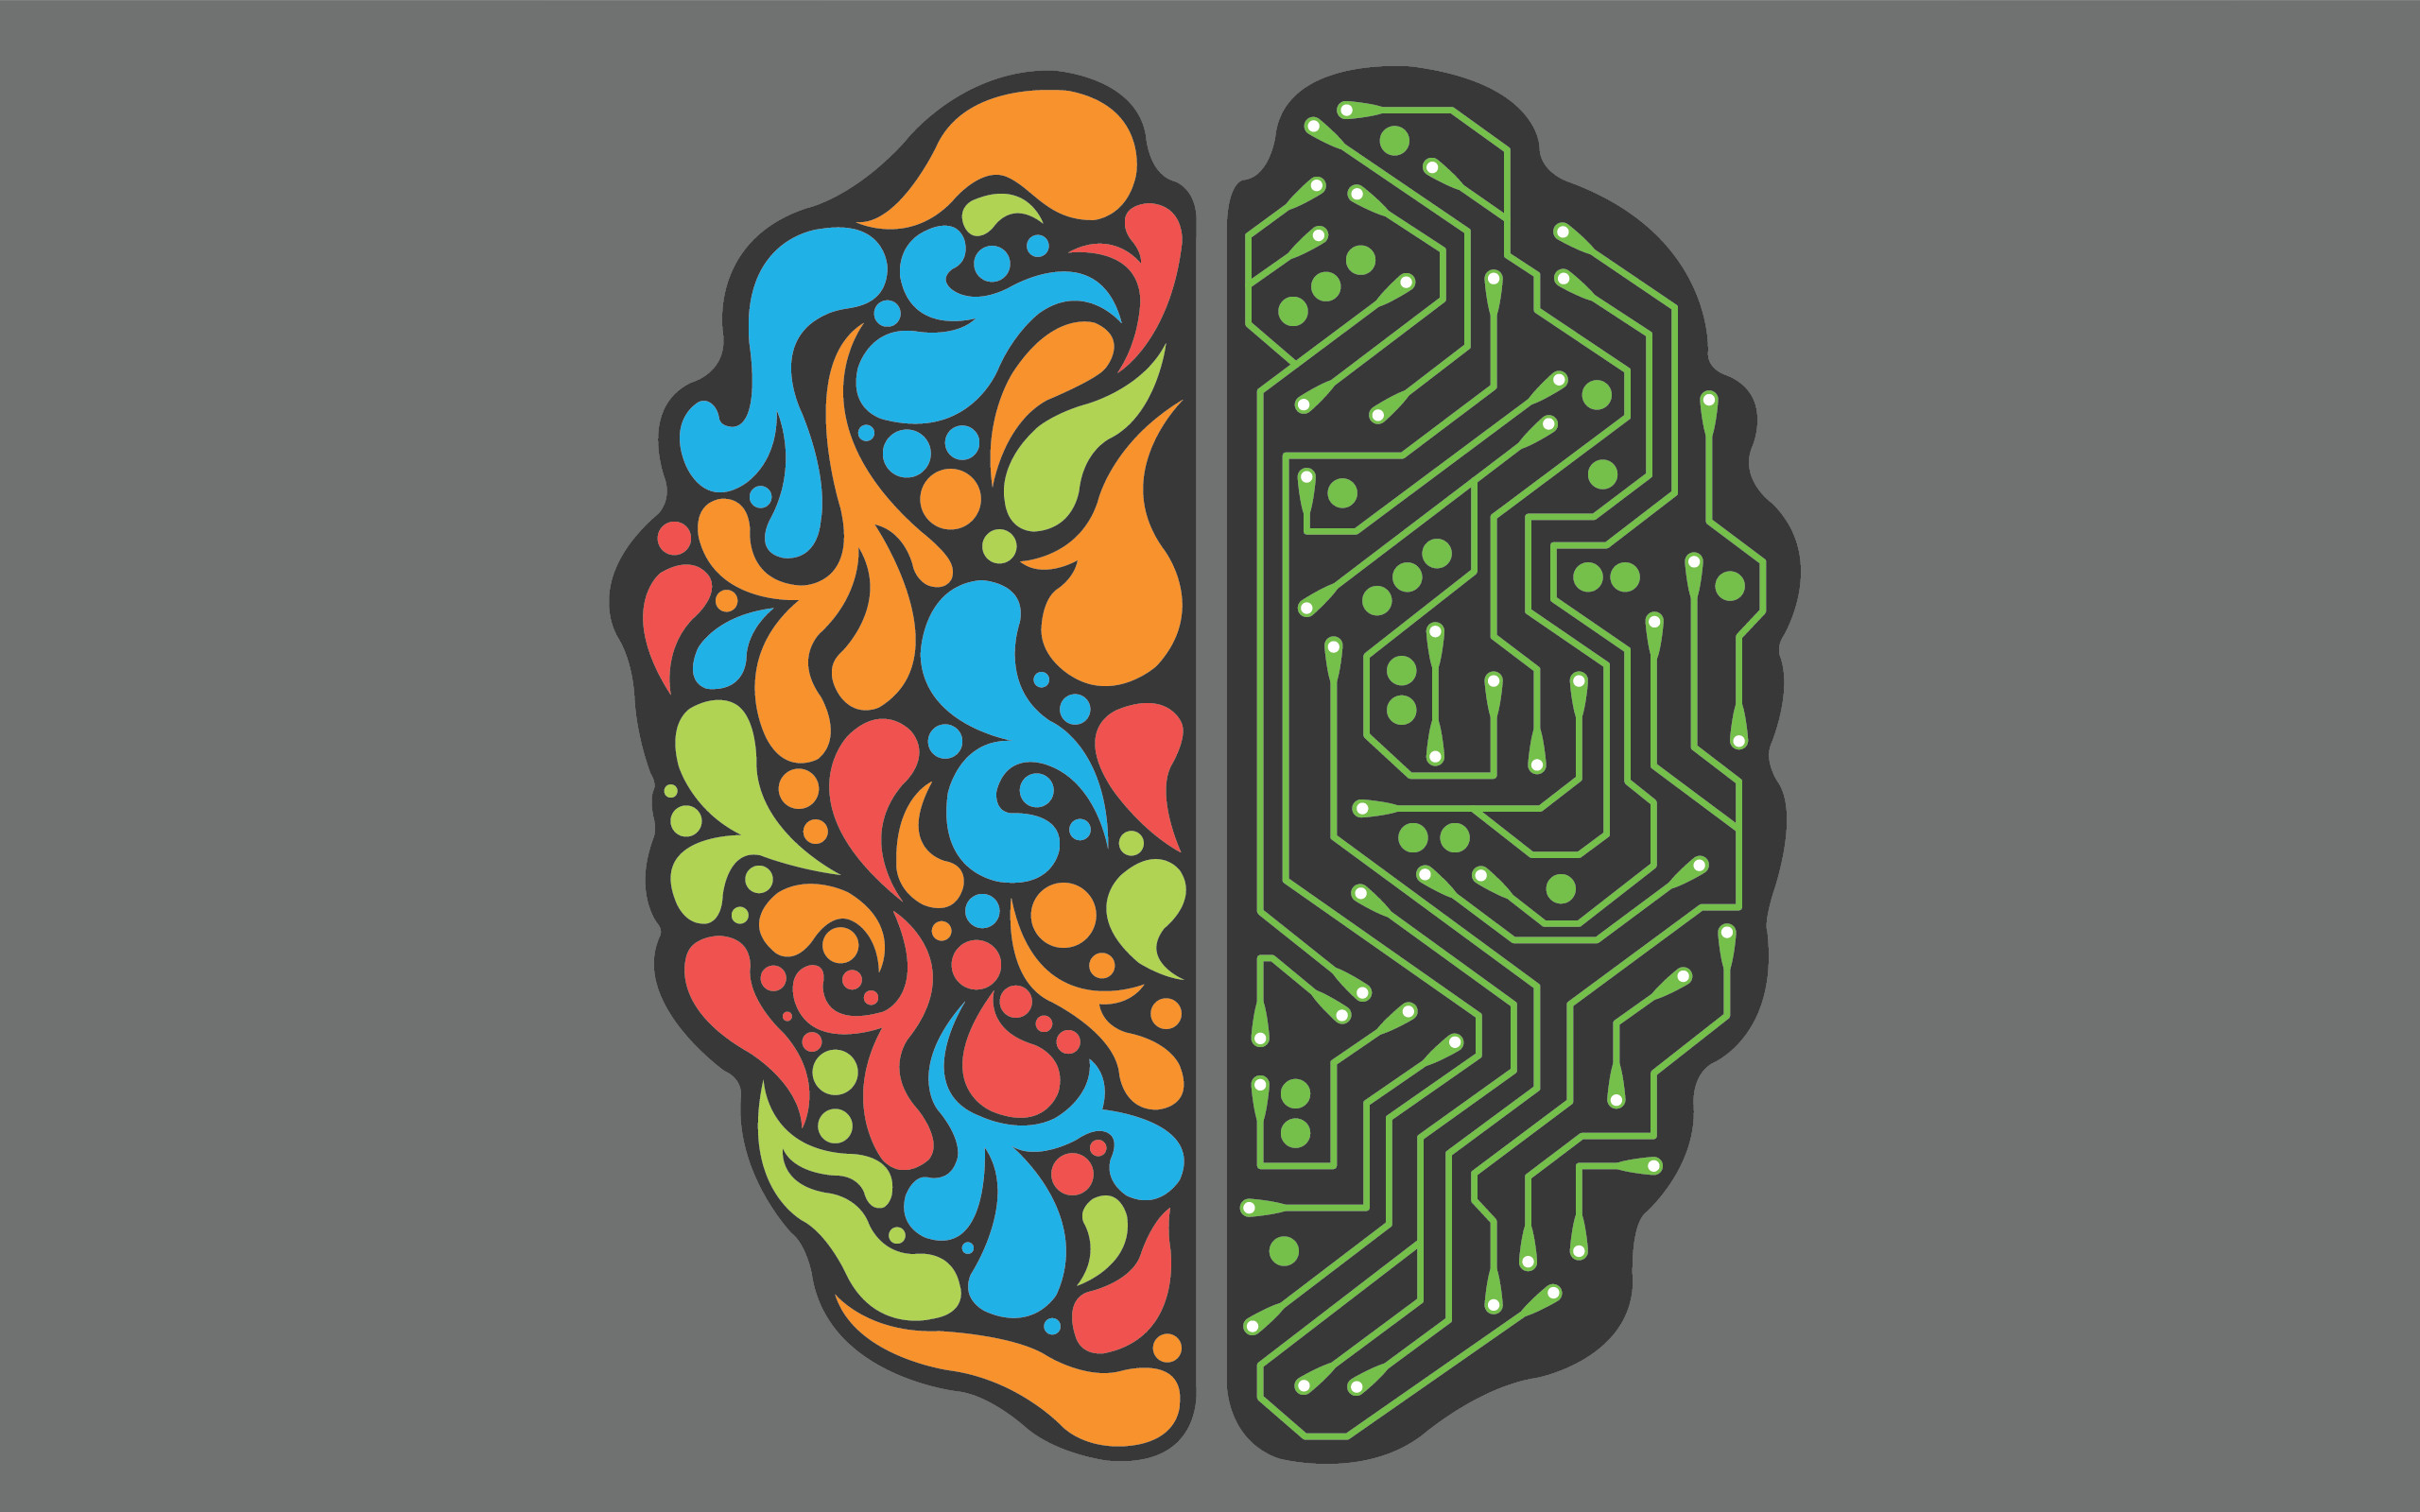 Wallpapers of Brain HD, 0.38 Mb, Carmelo Witmer